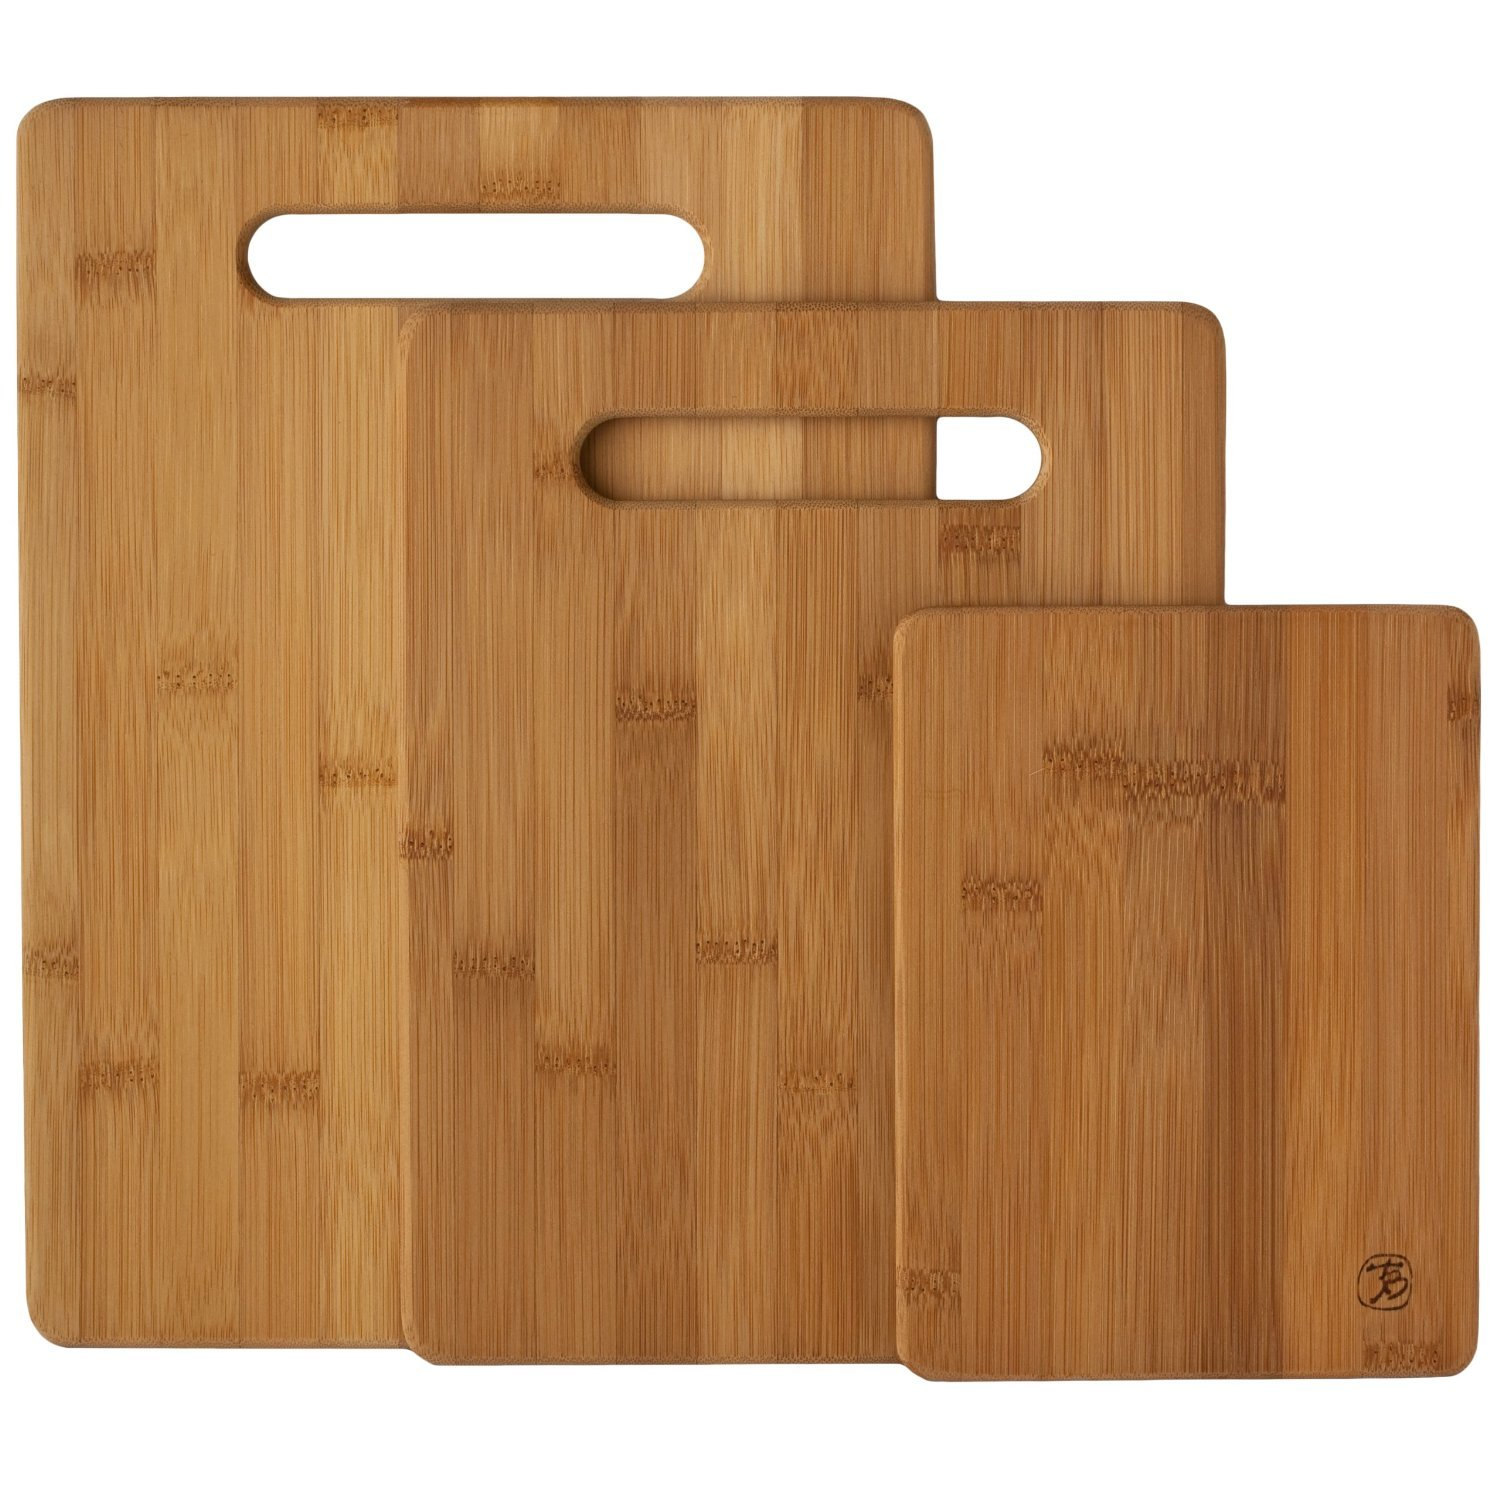 totally-bamboo-original-best-wood-cutting-boards-reviews